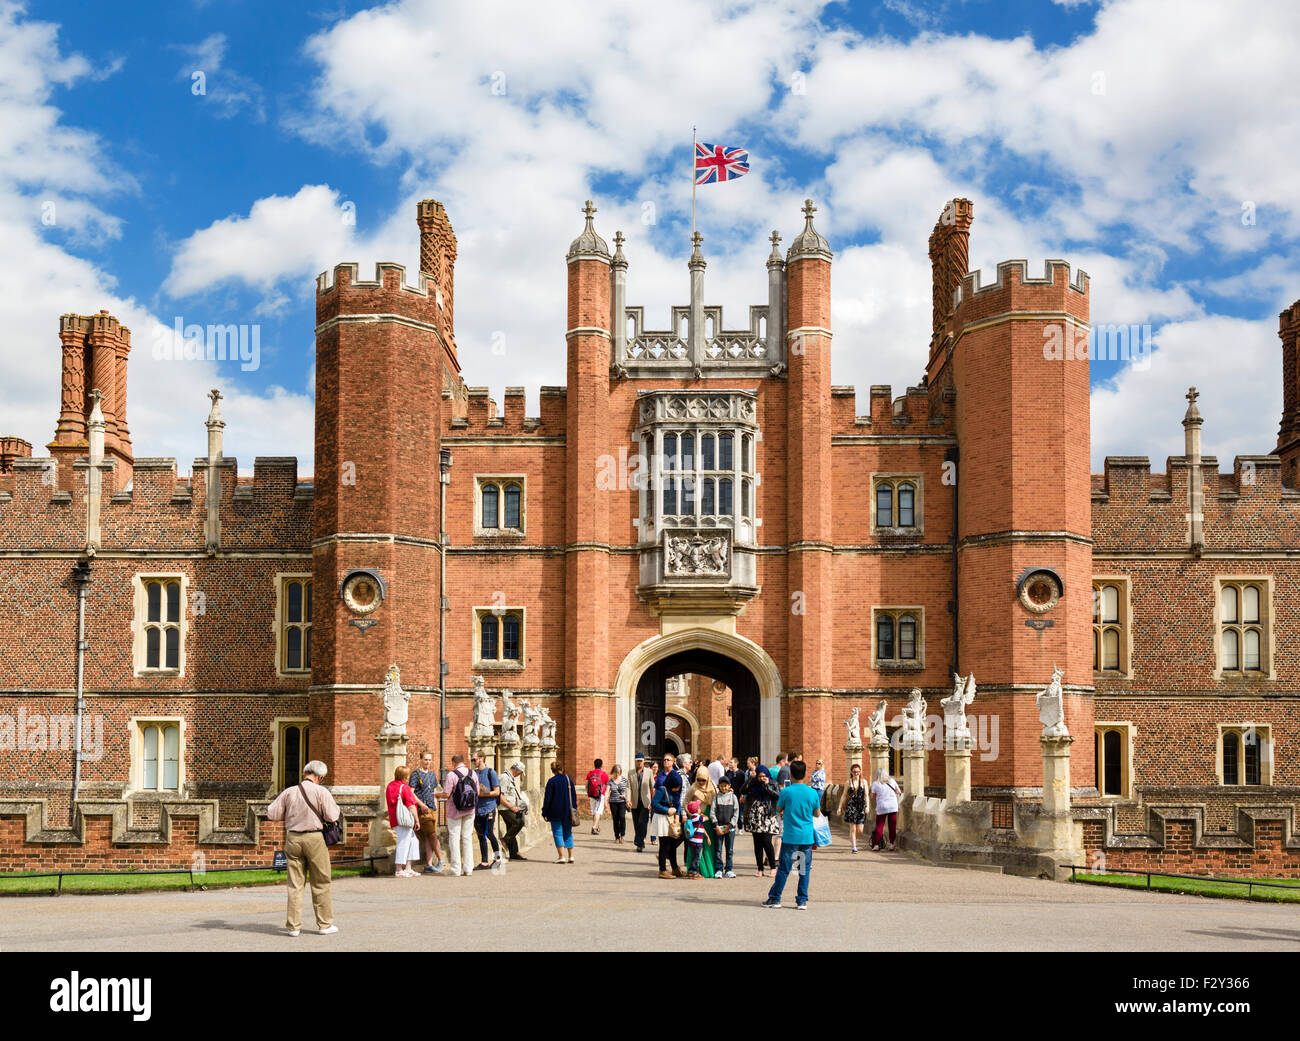 The West Front and Main Entrance to Hampton Court Palace, Richmond upon Thames, London, England, UK - Stock Image